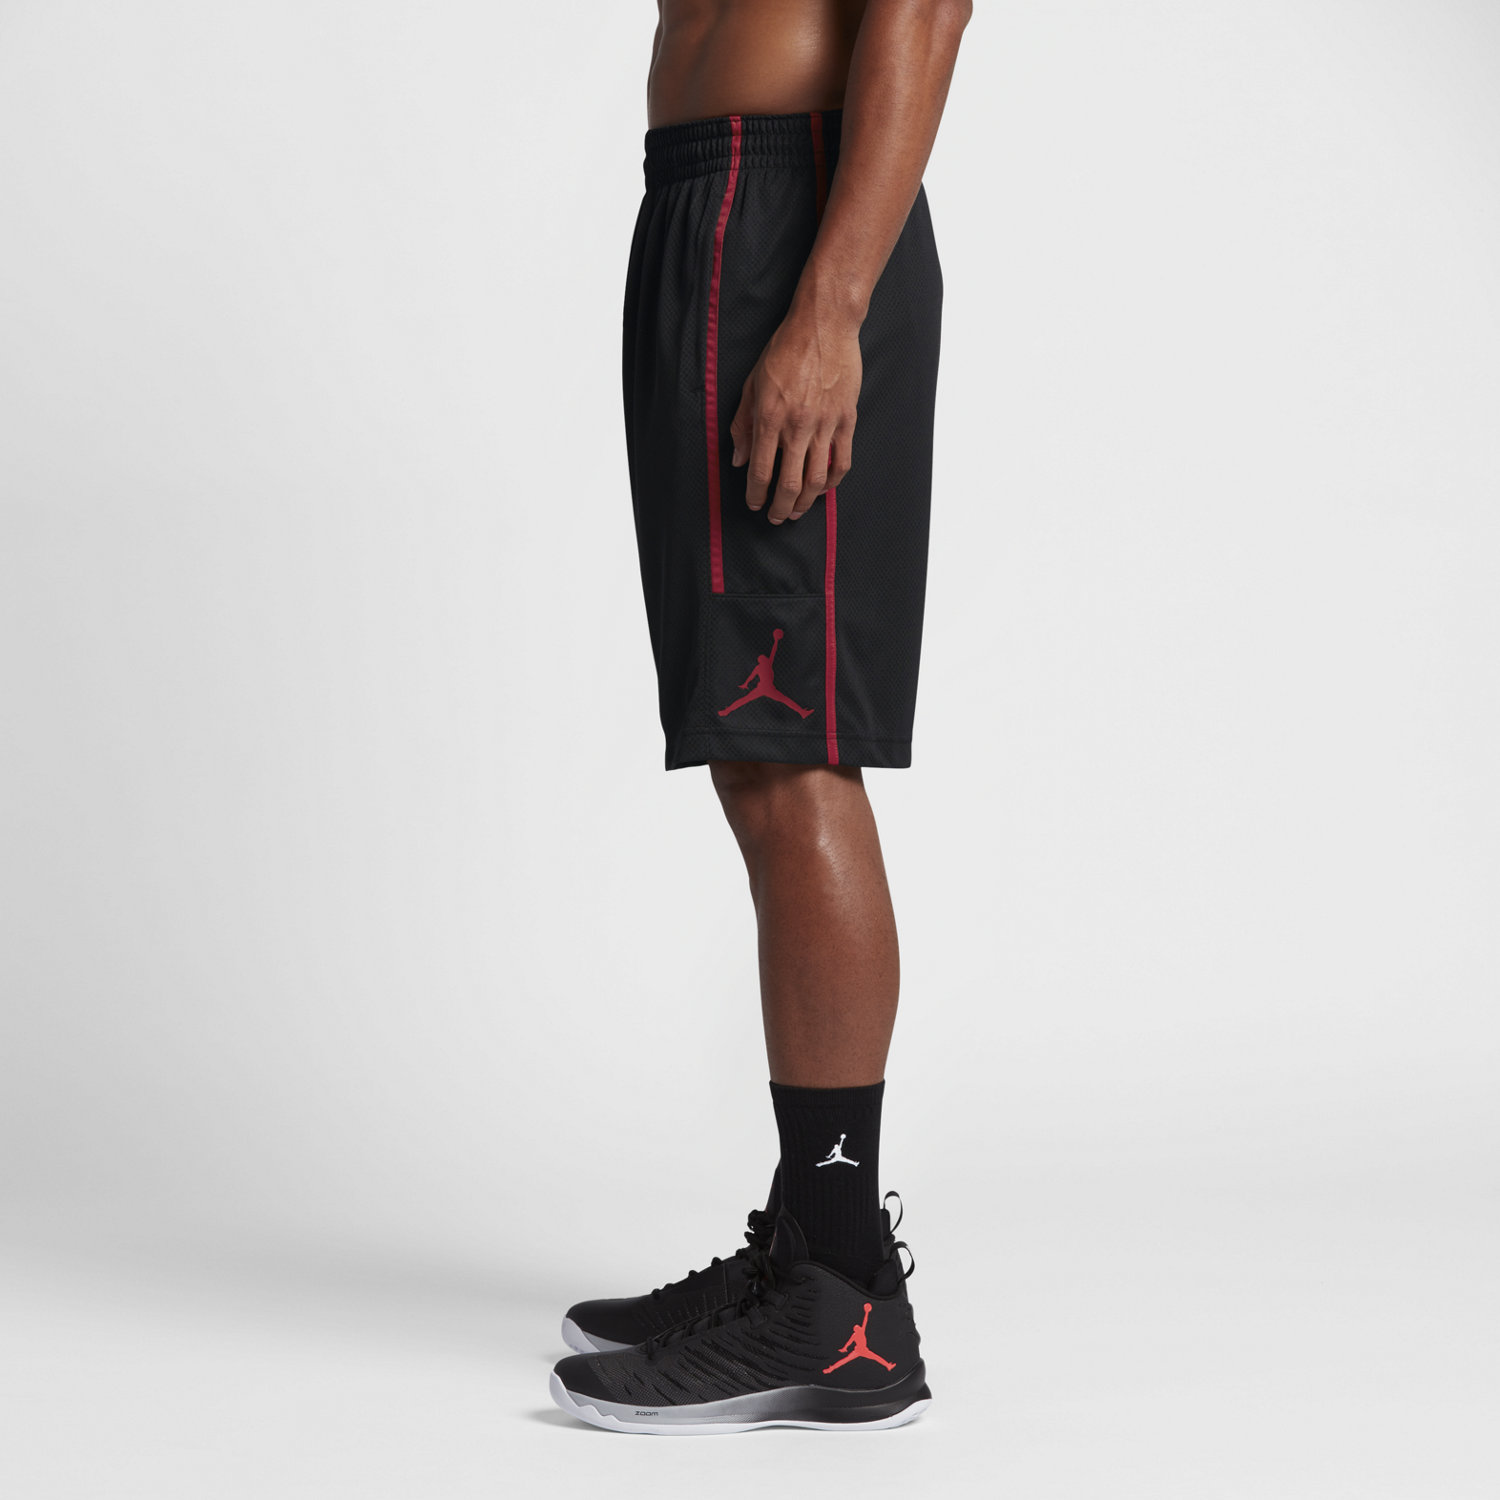 Mens basketball shorts on sale free shipping - Mens Basketball Shorts On Sale Free Shipping 58